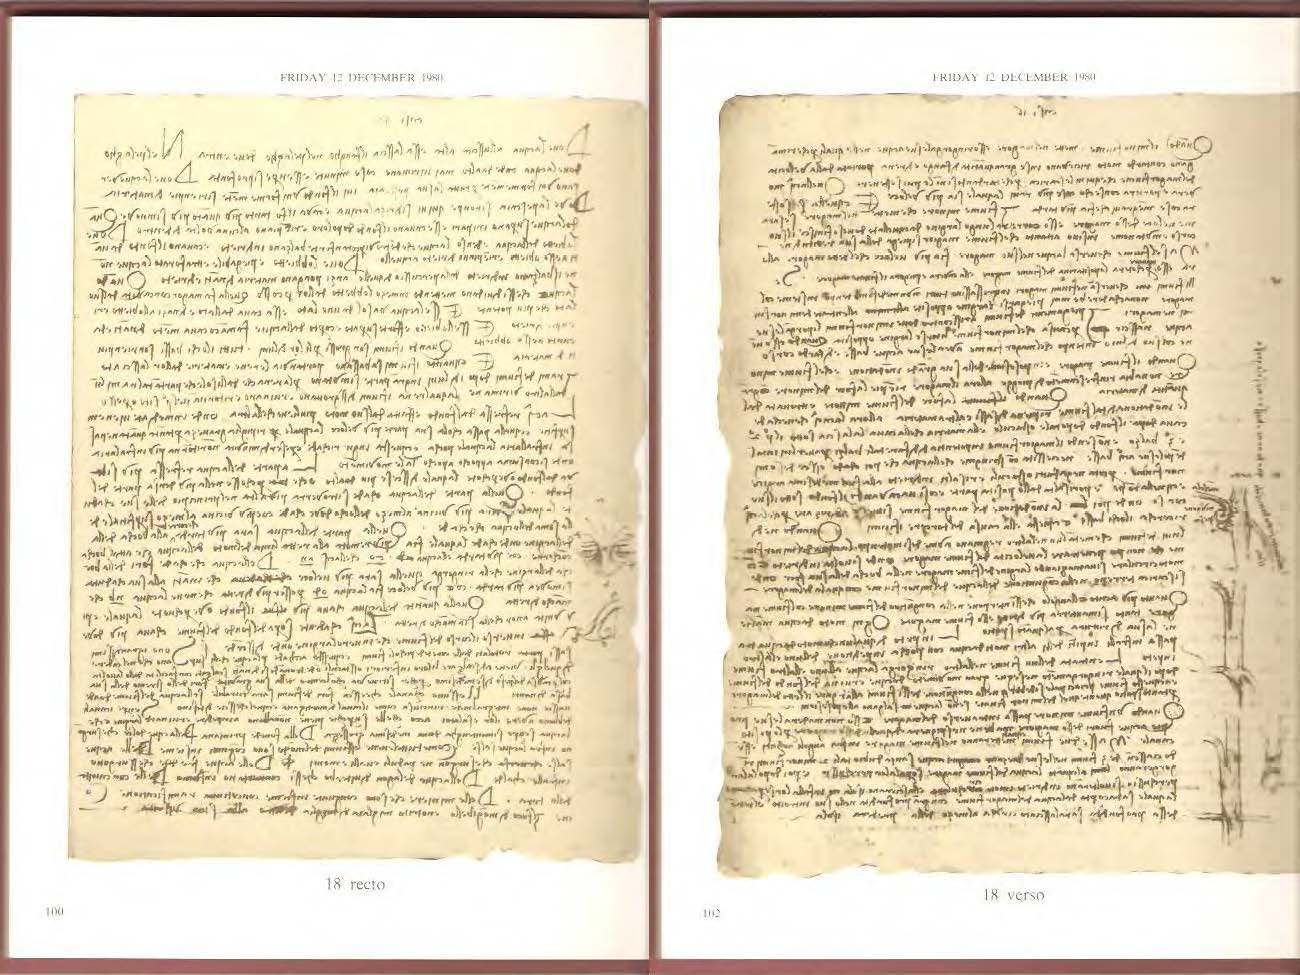 Codex_Leicester_Page_19_Image_0001.jpg